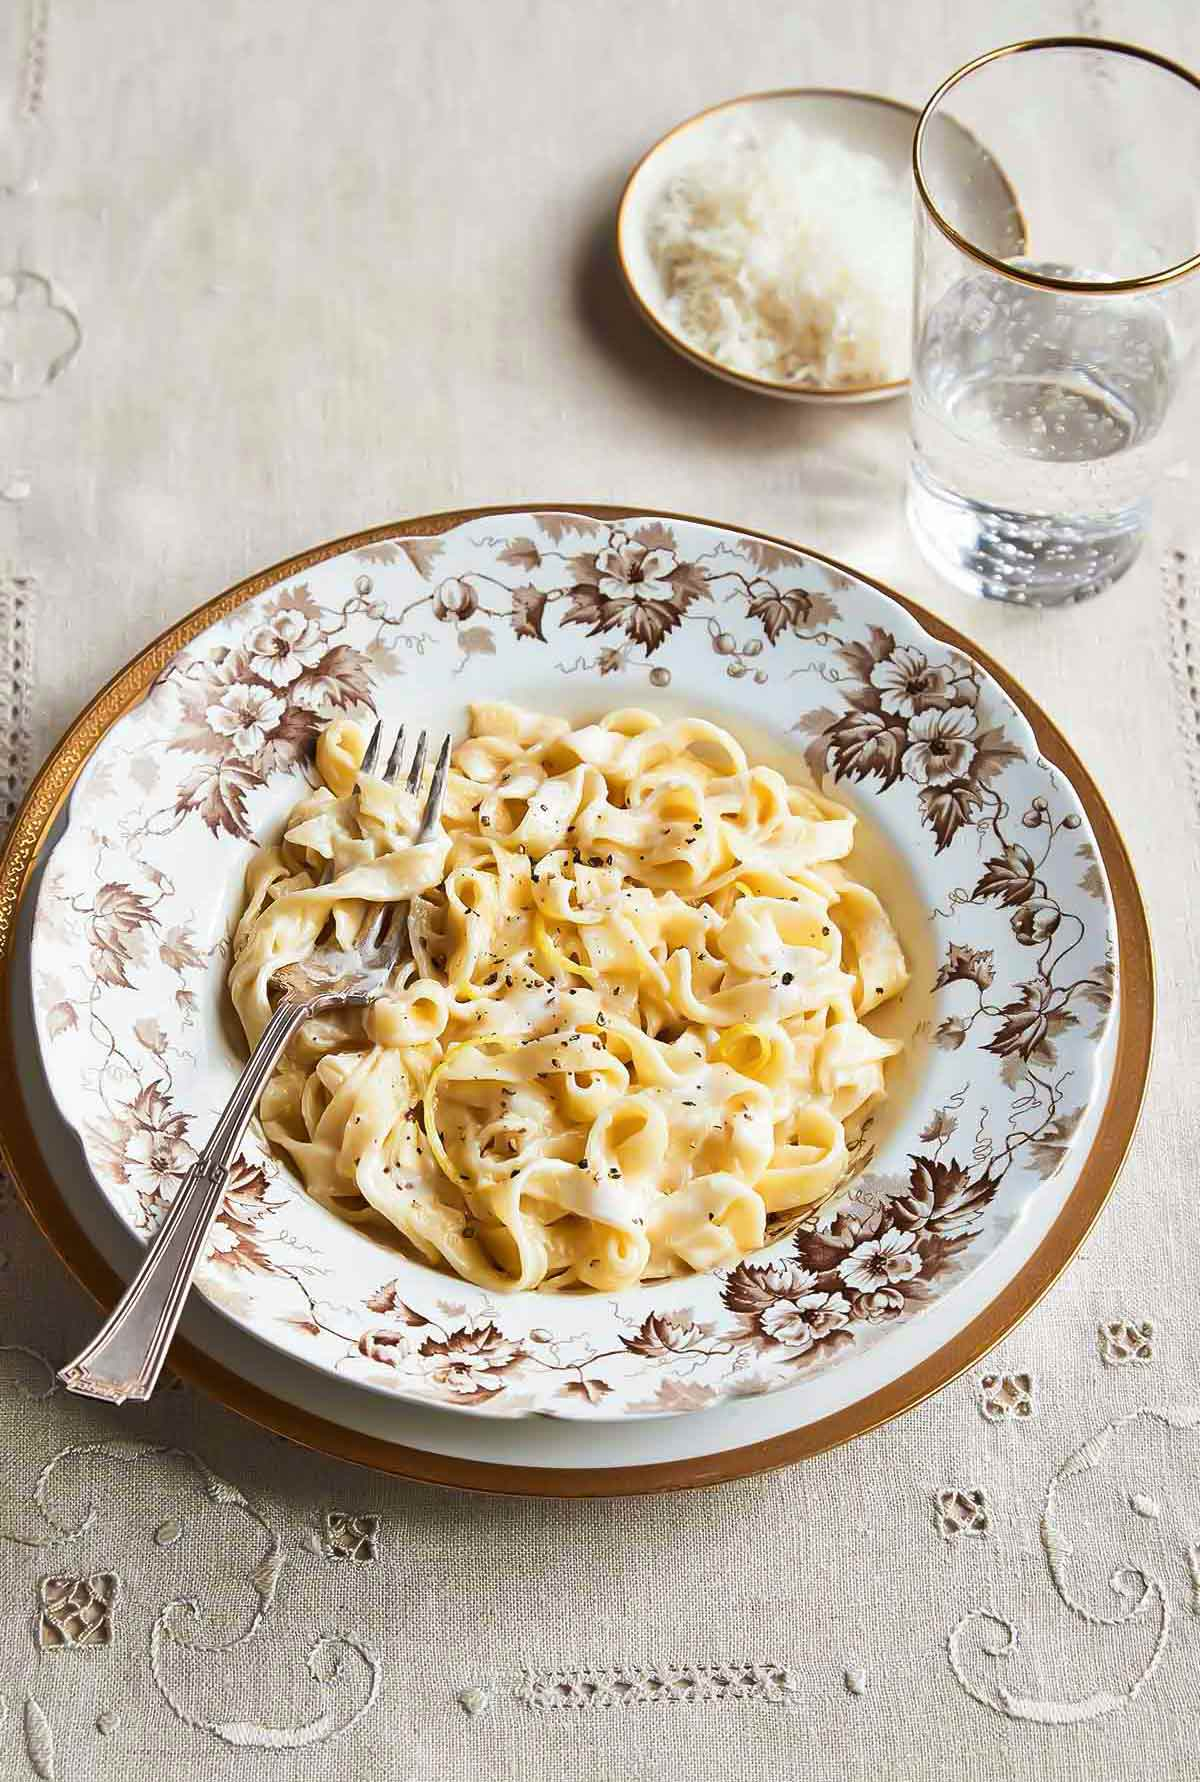 A patterned bowl filled with lemony fettuccine alfredo on a white and gold plate with a glass of water and dish of Parmesan on the side.